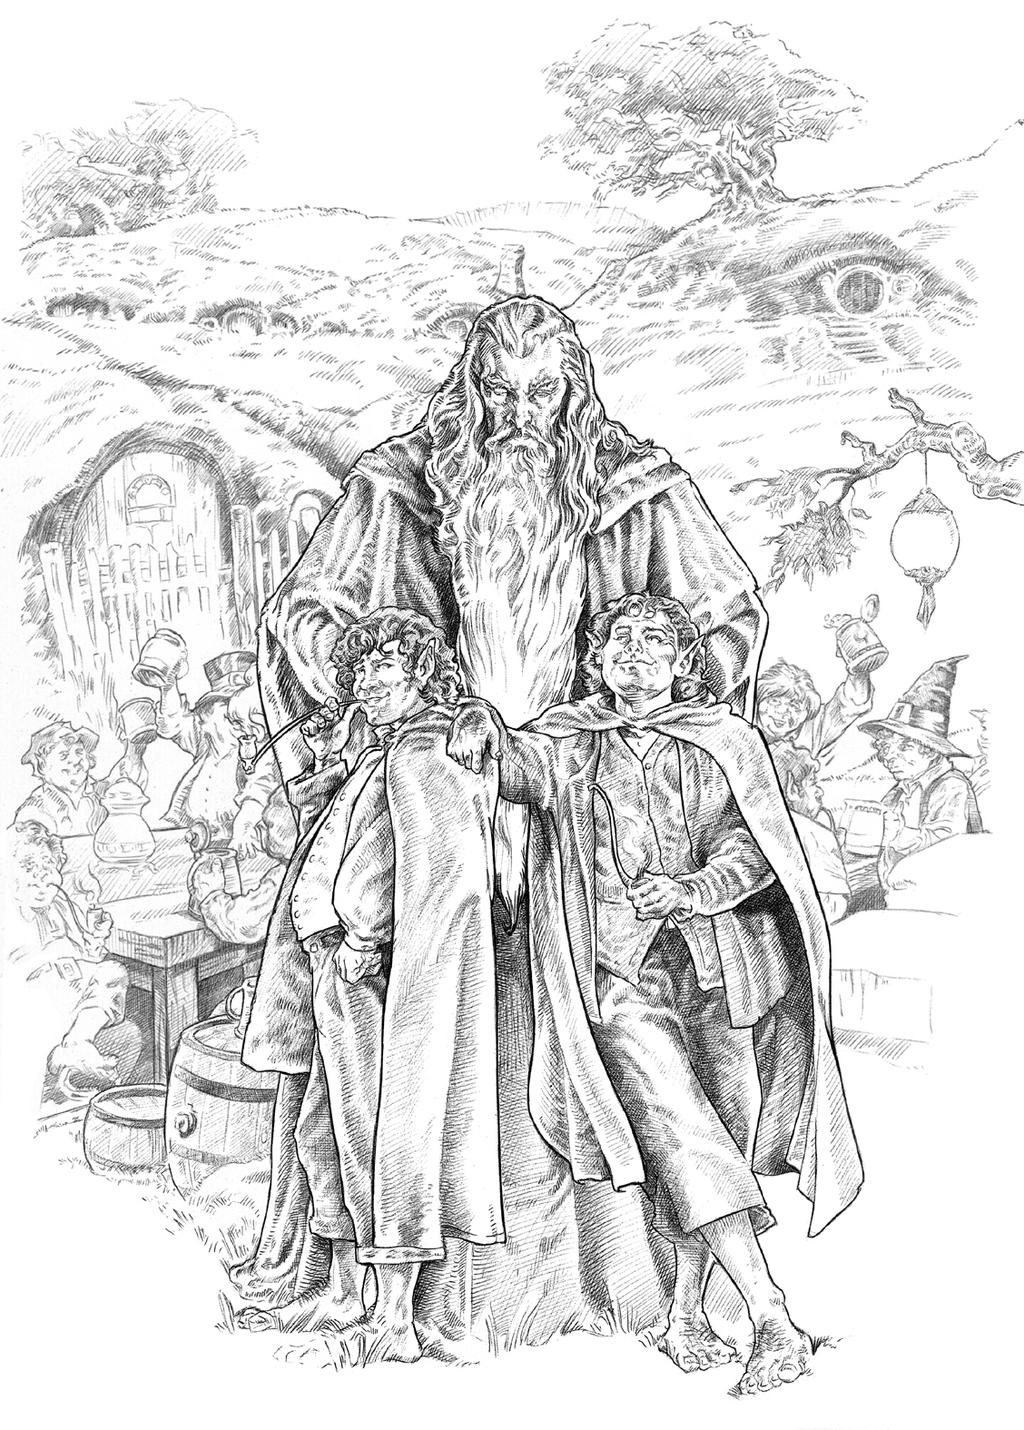 Pippin y merry by nachocastro on deviantart for Black hole coloring page